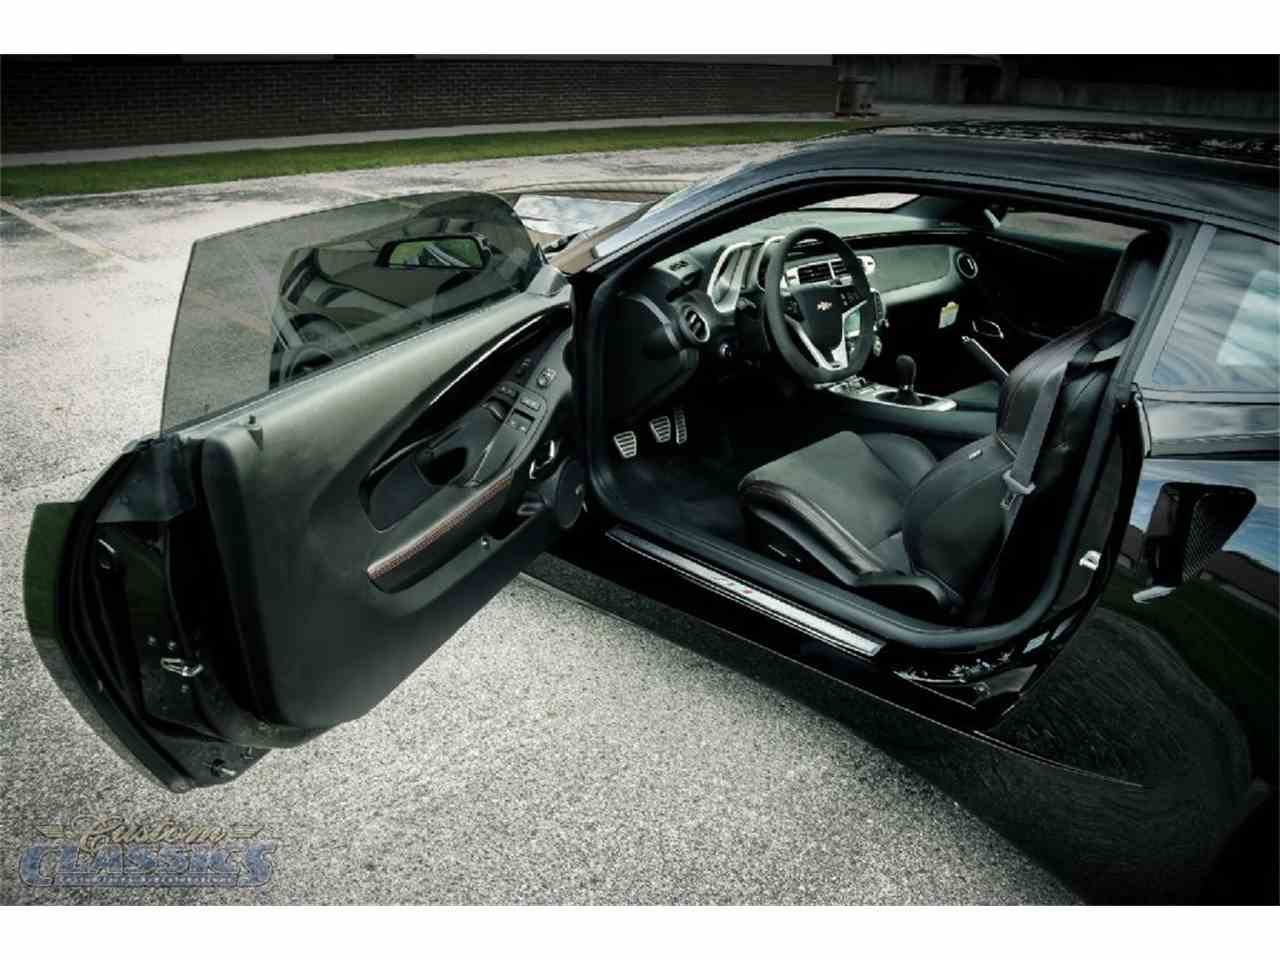 Large Picture of '14 Chevrolet Camaro ZL-1 Widebody - $120,000.00 Offered by Custom Classics - HK4B